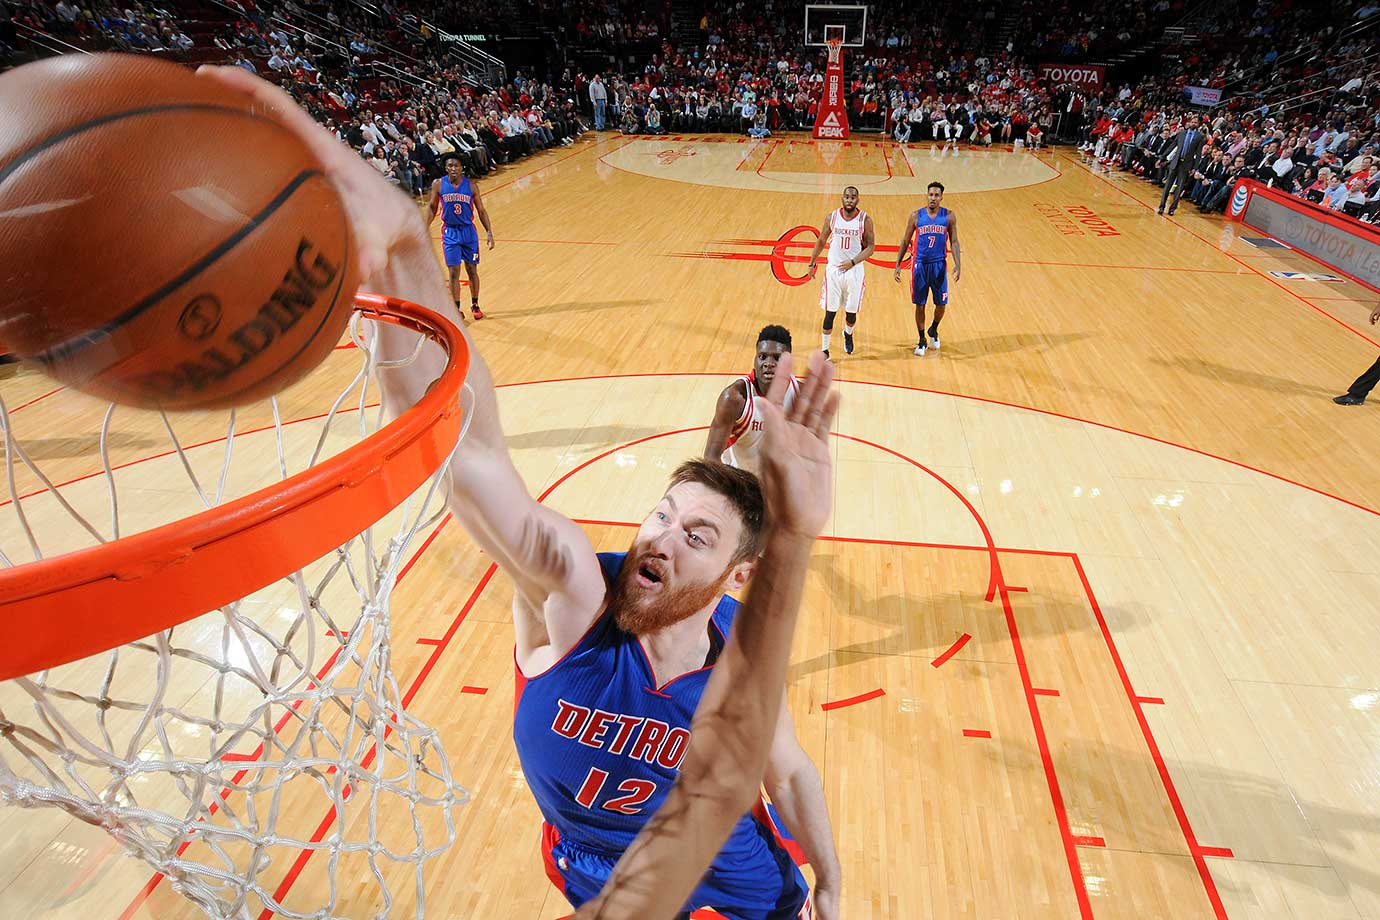 Aron Baynes of the Detroit Pistons dunks against the Houston Rockets at the Toyota Center in Houston.